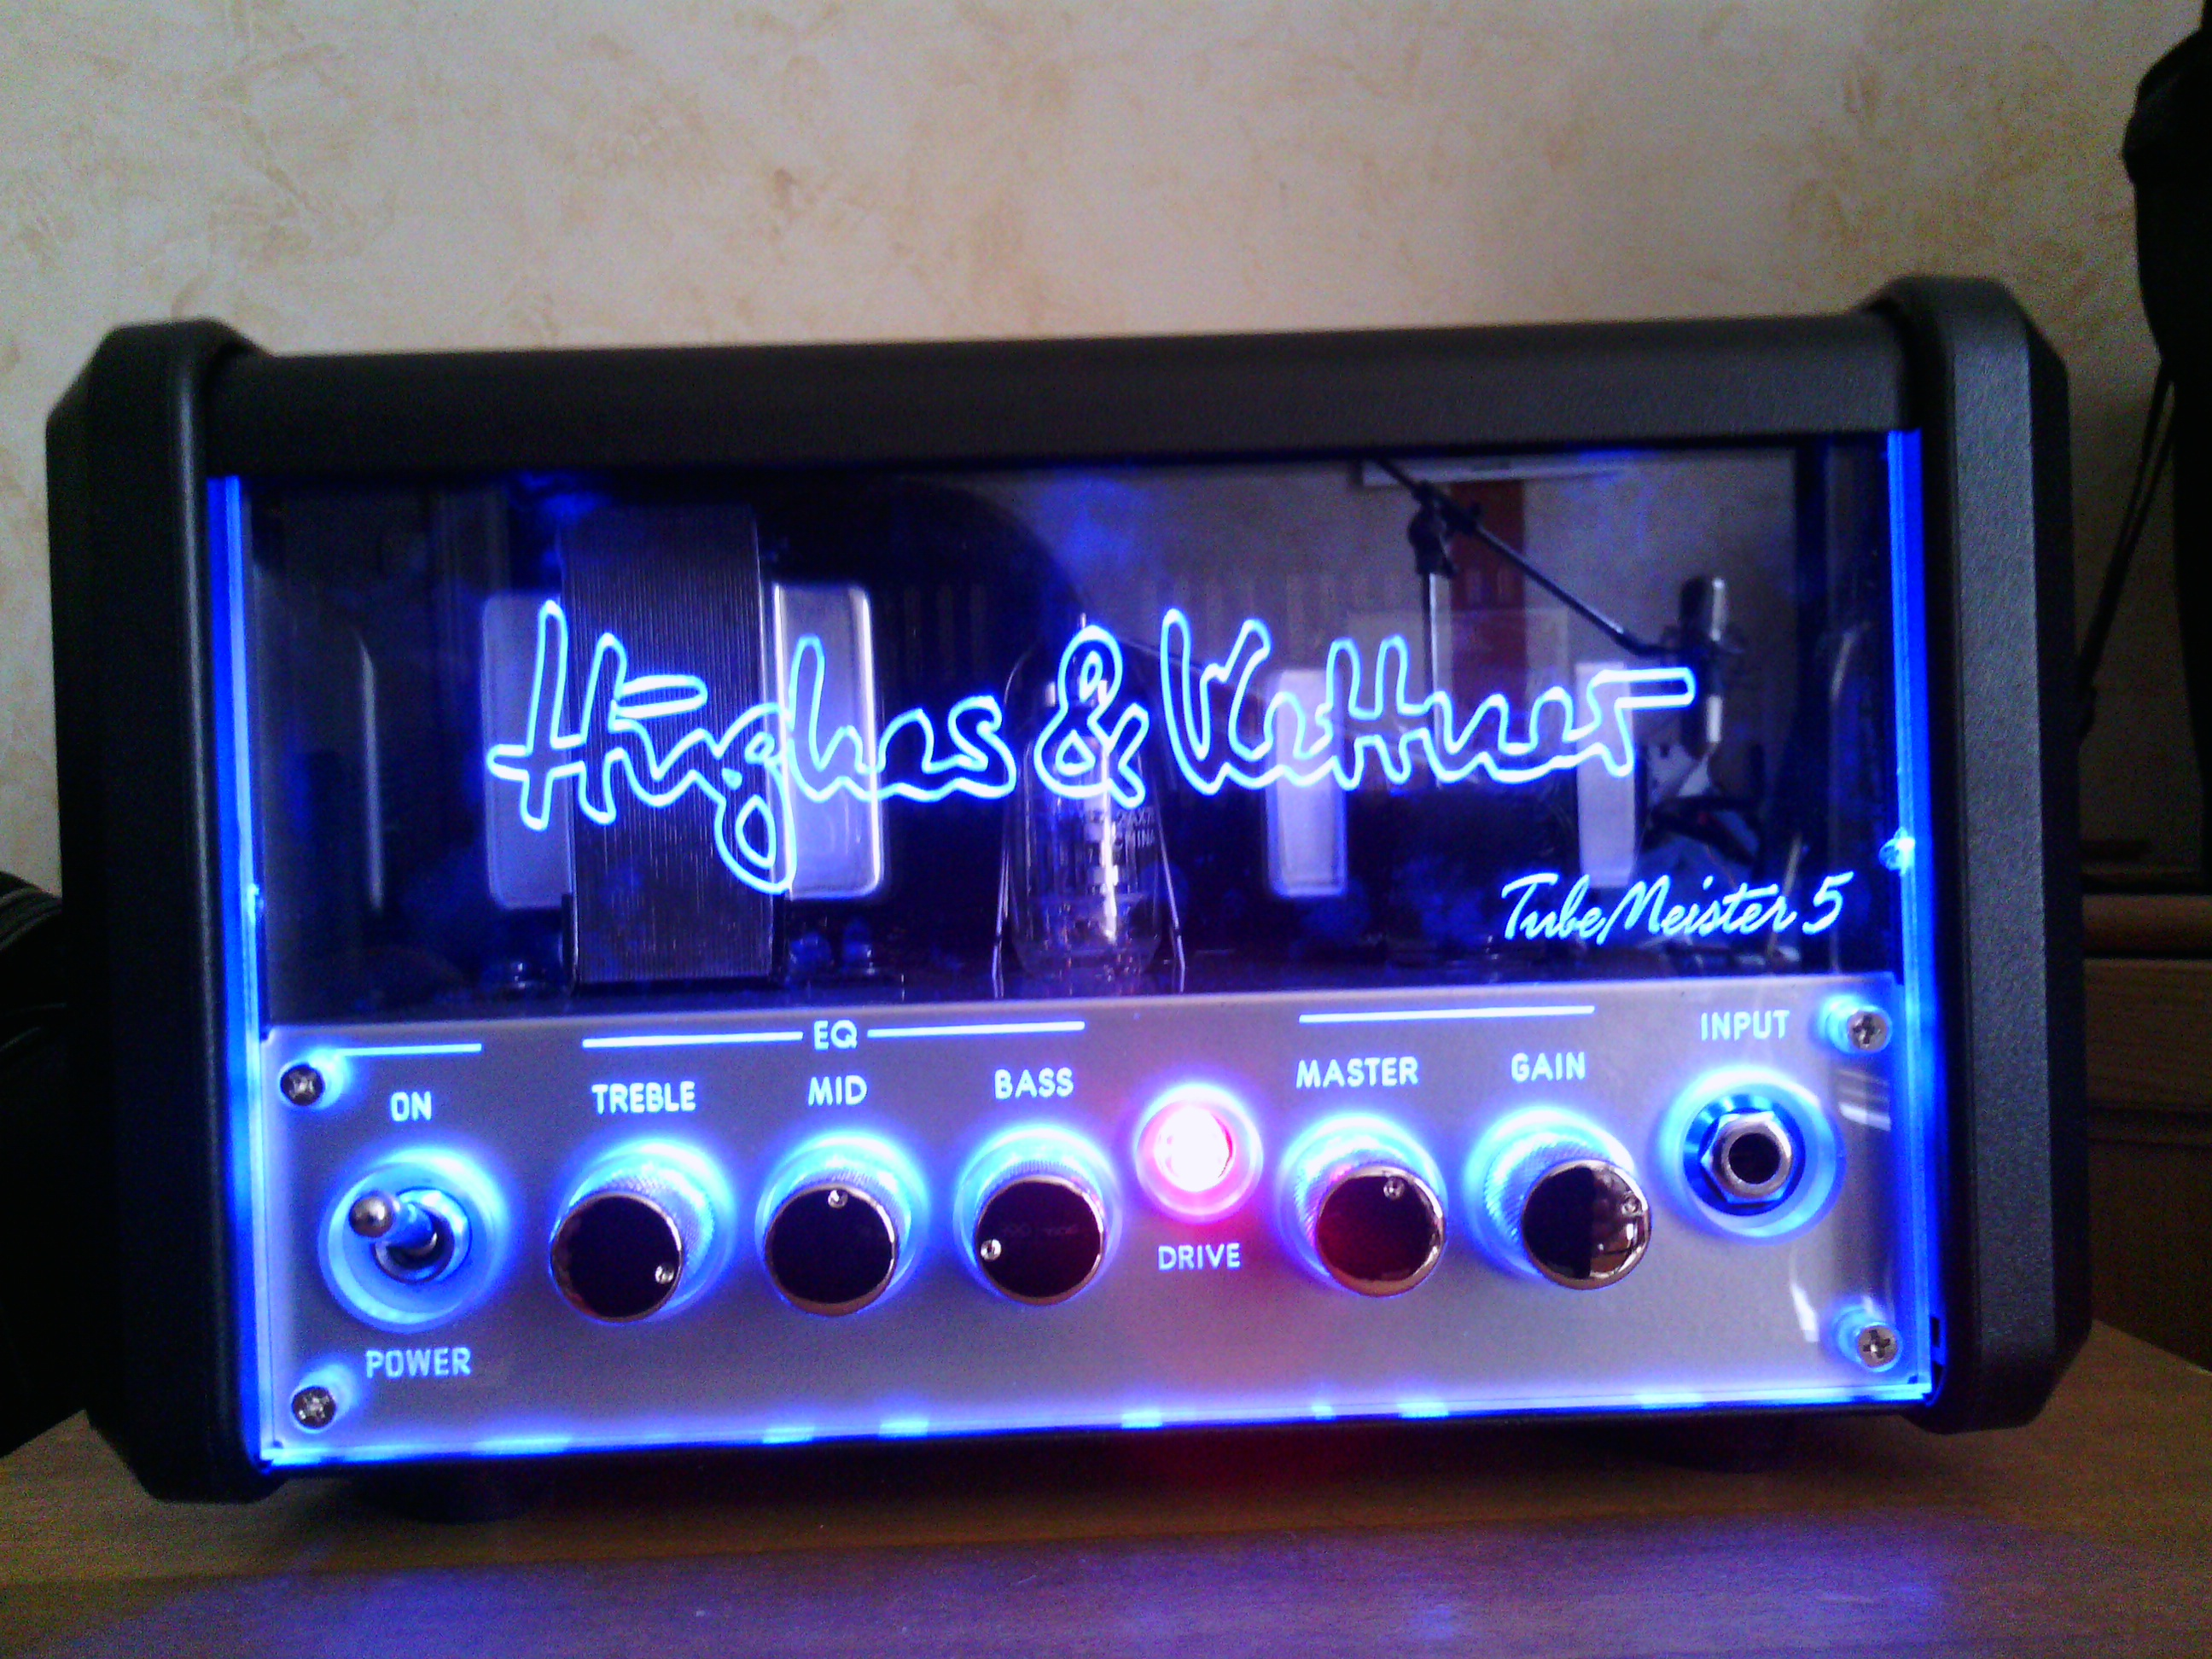 hughes kettner tubemeister 5 head image 628336 audiofanzine. Black Bedroom Furniture Sets. Home Design Ideas